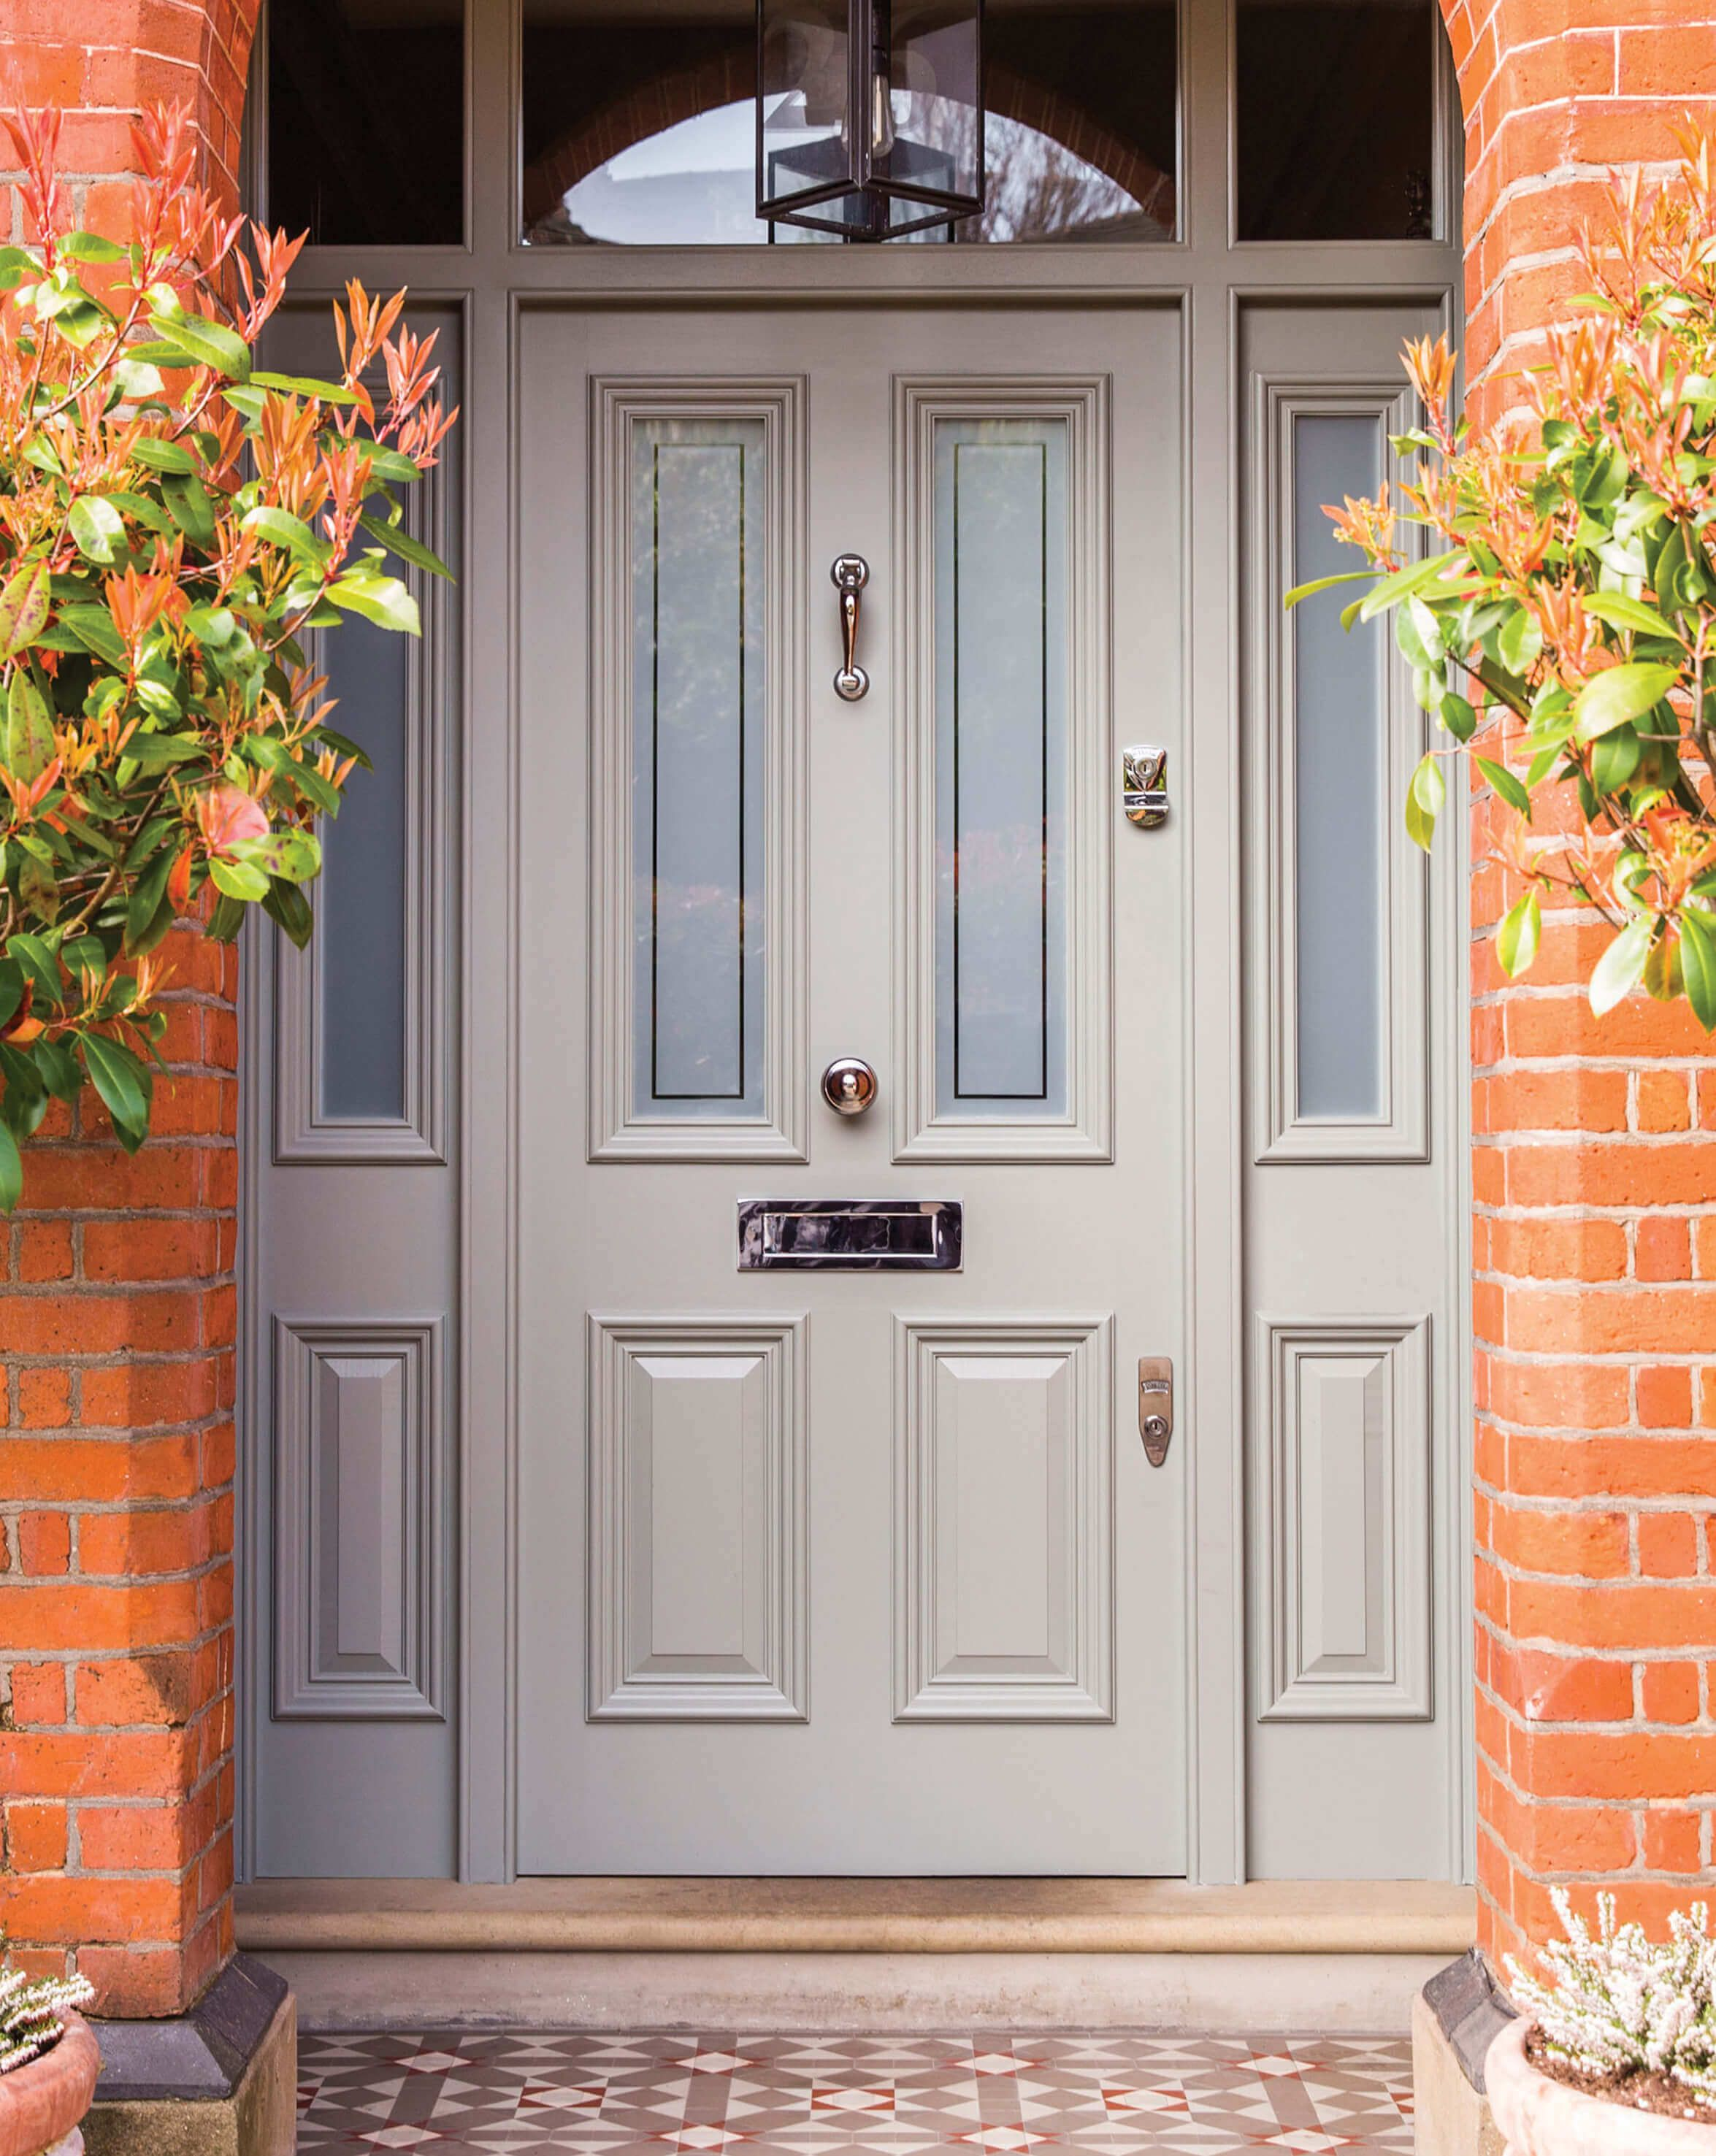 Heritage grey Victorian front door and solid door frame with side lights. Opaque etched glazing and polished chrome door furniture complete the look. #victorianfrontdoors